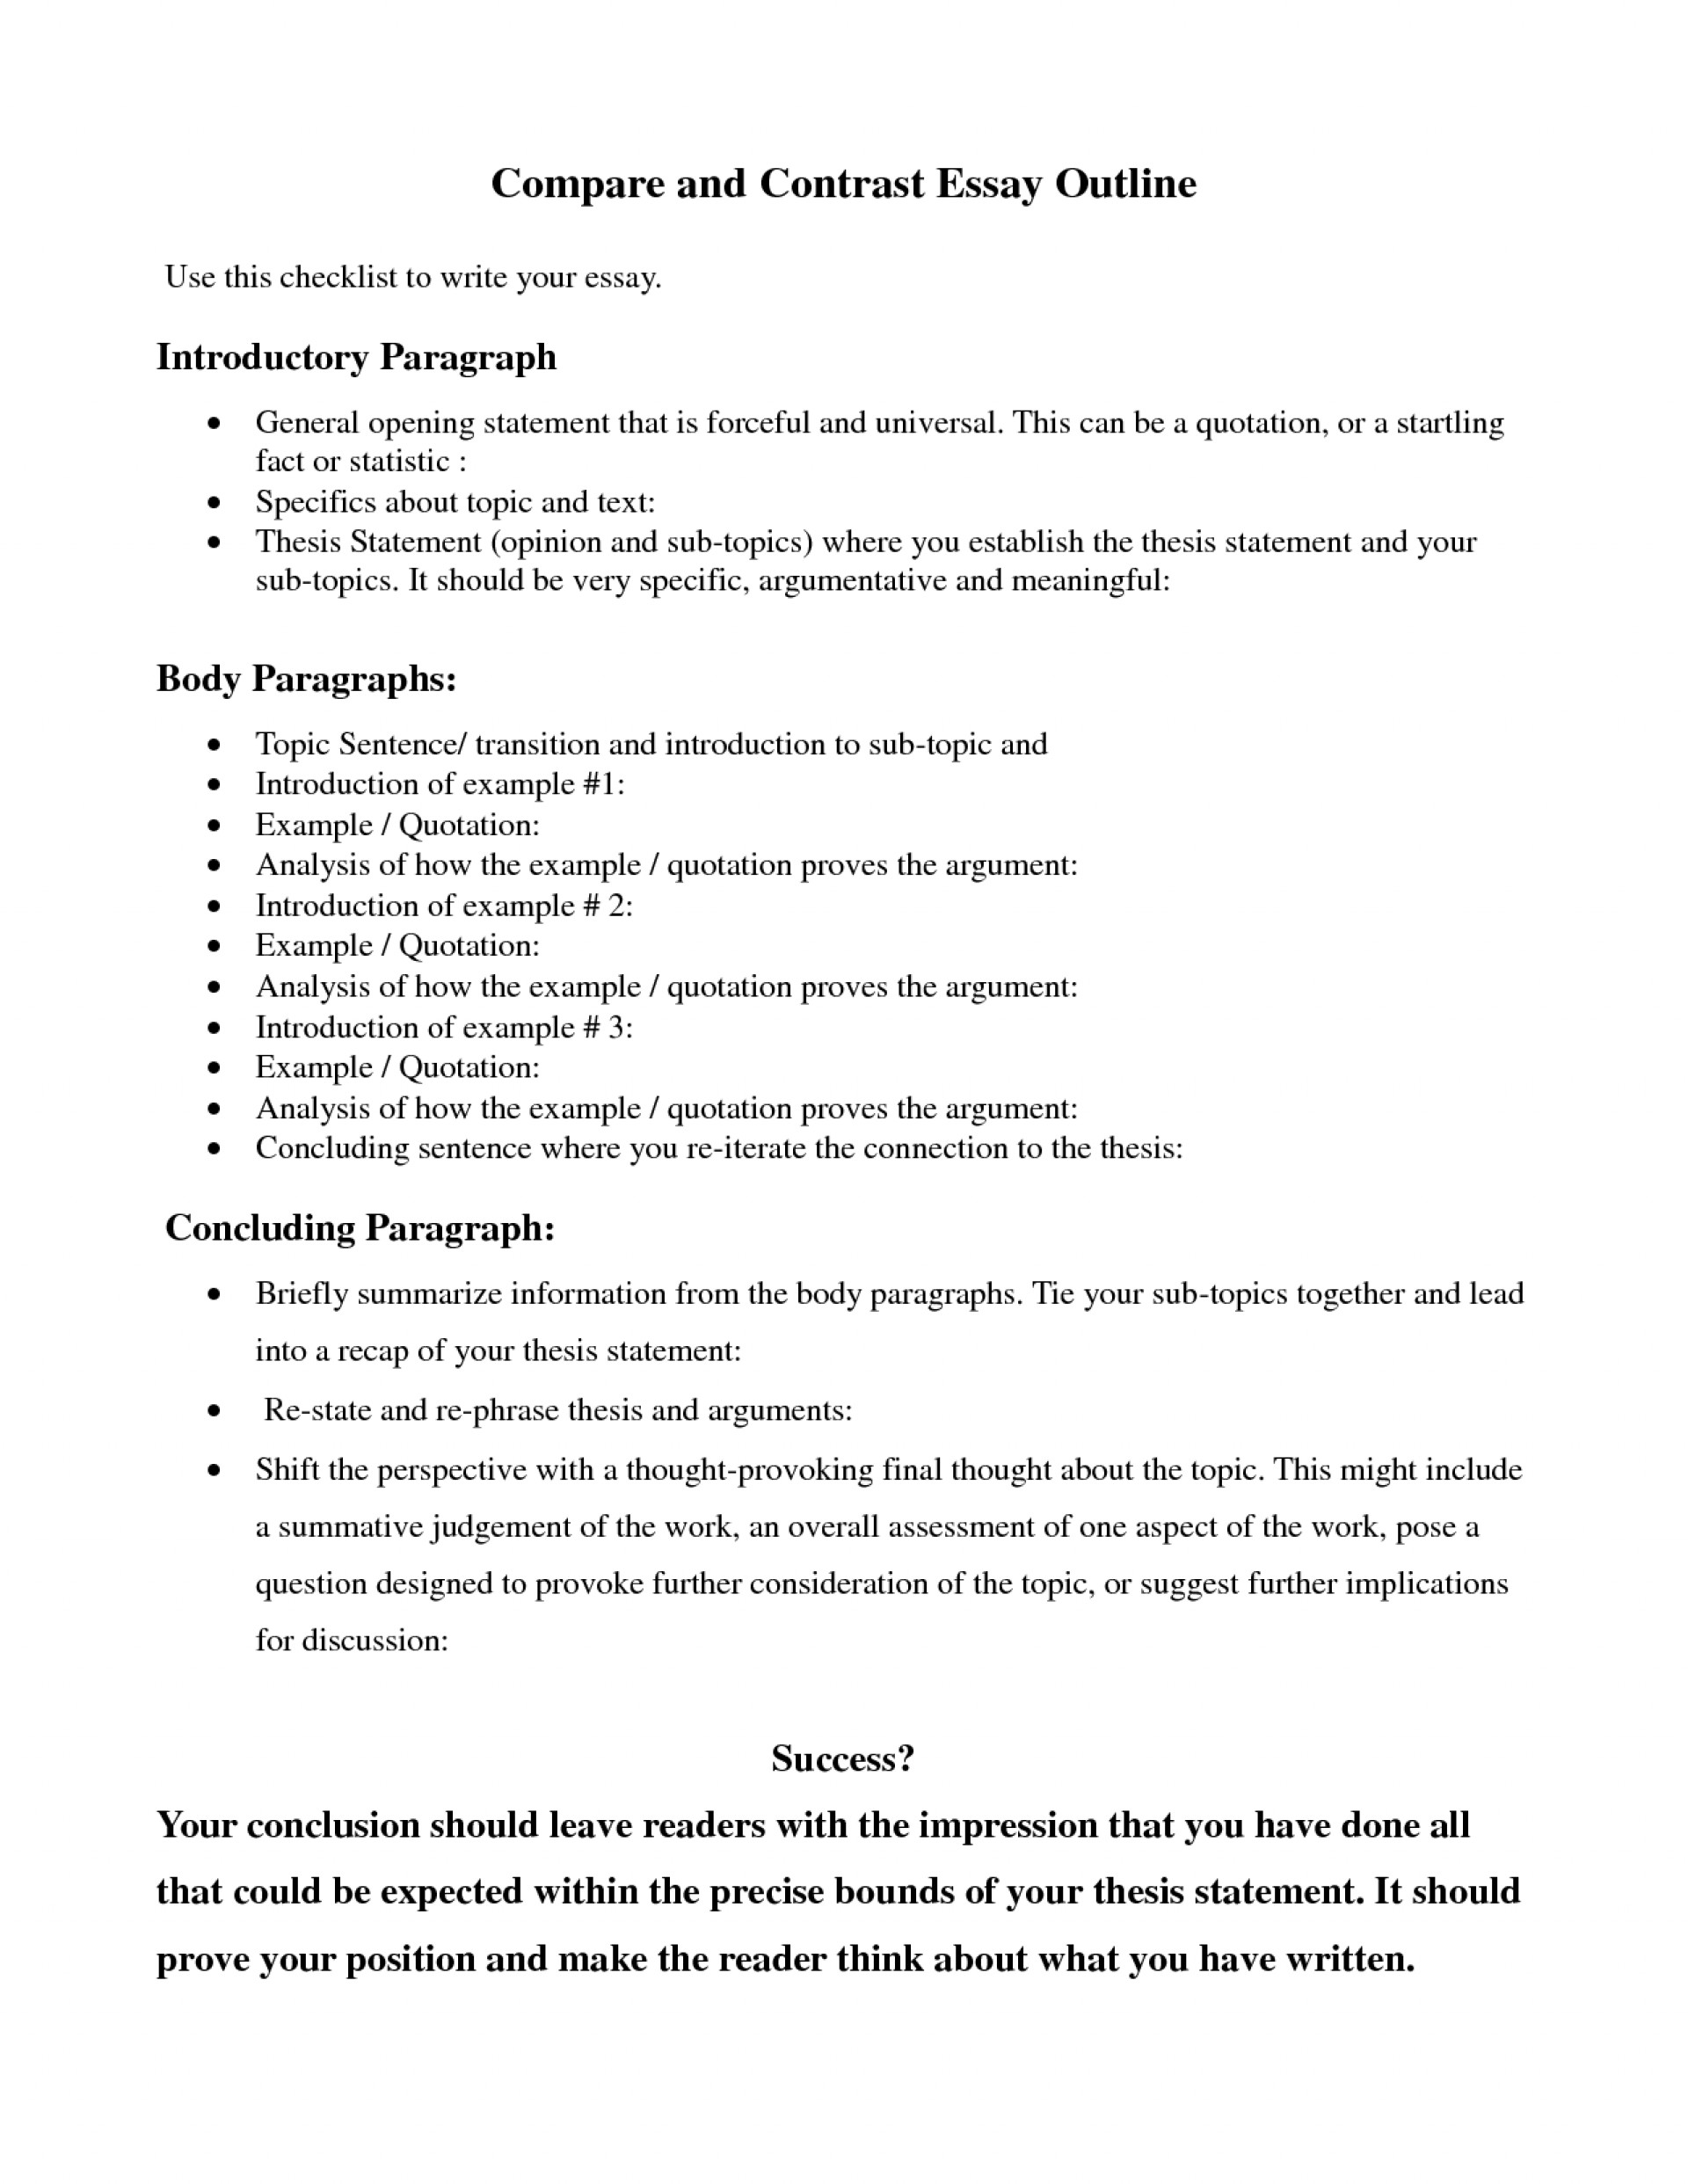 009 Essay Example Free Compare And Contrast Examples Singular Comparison Pdf 1920